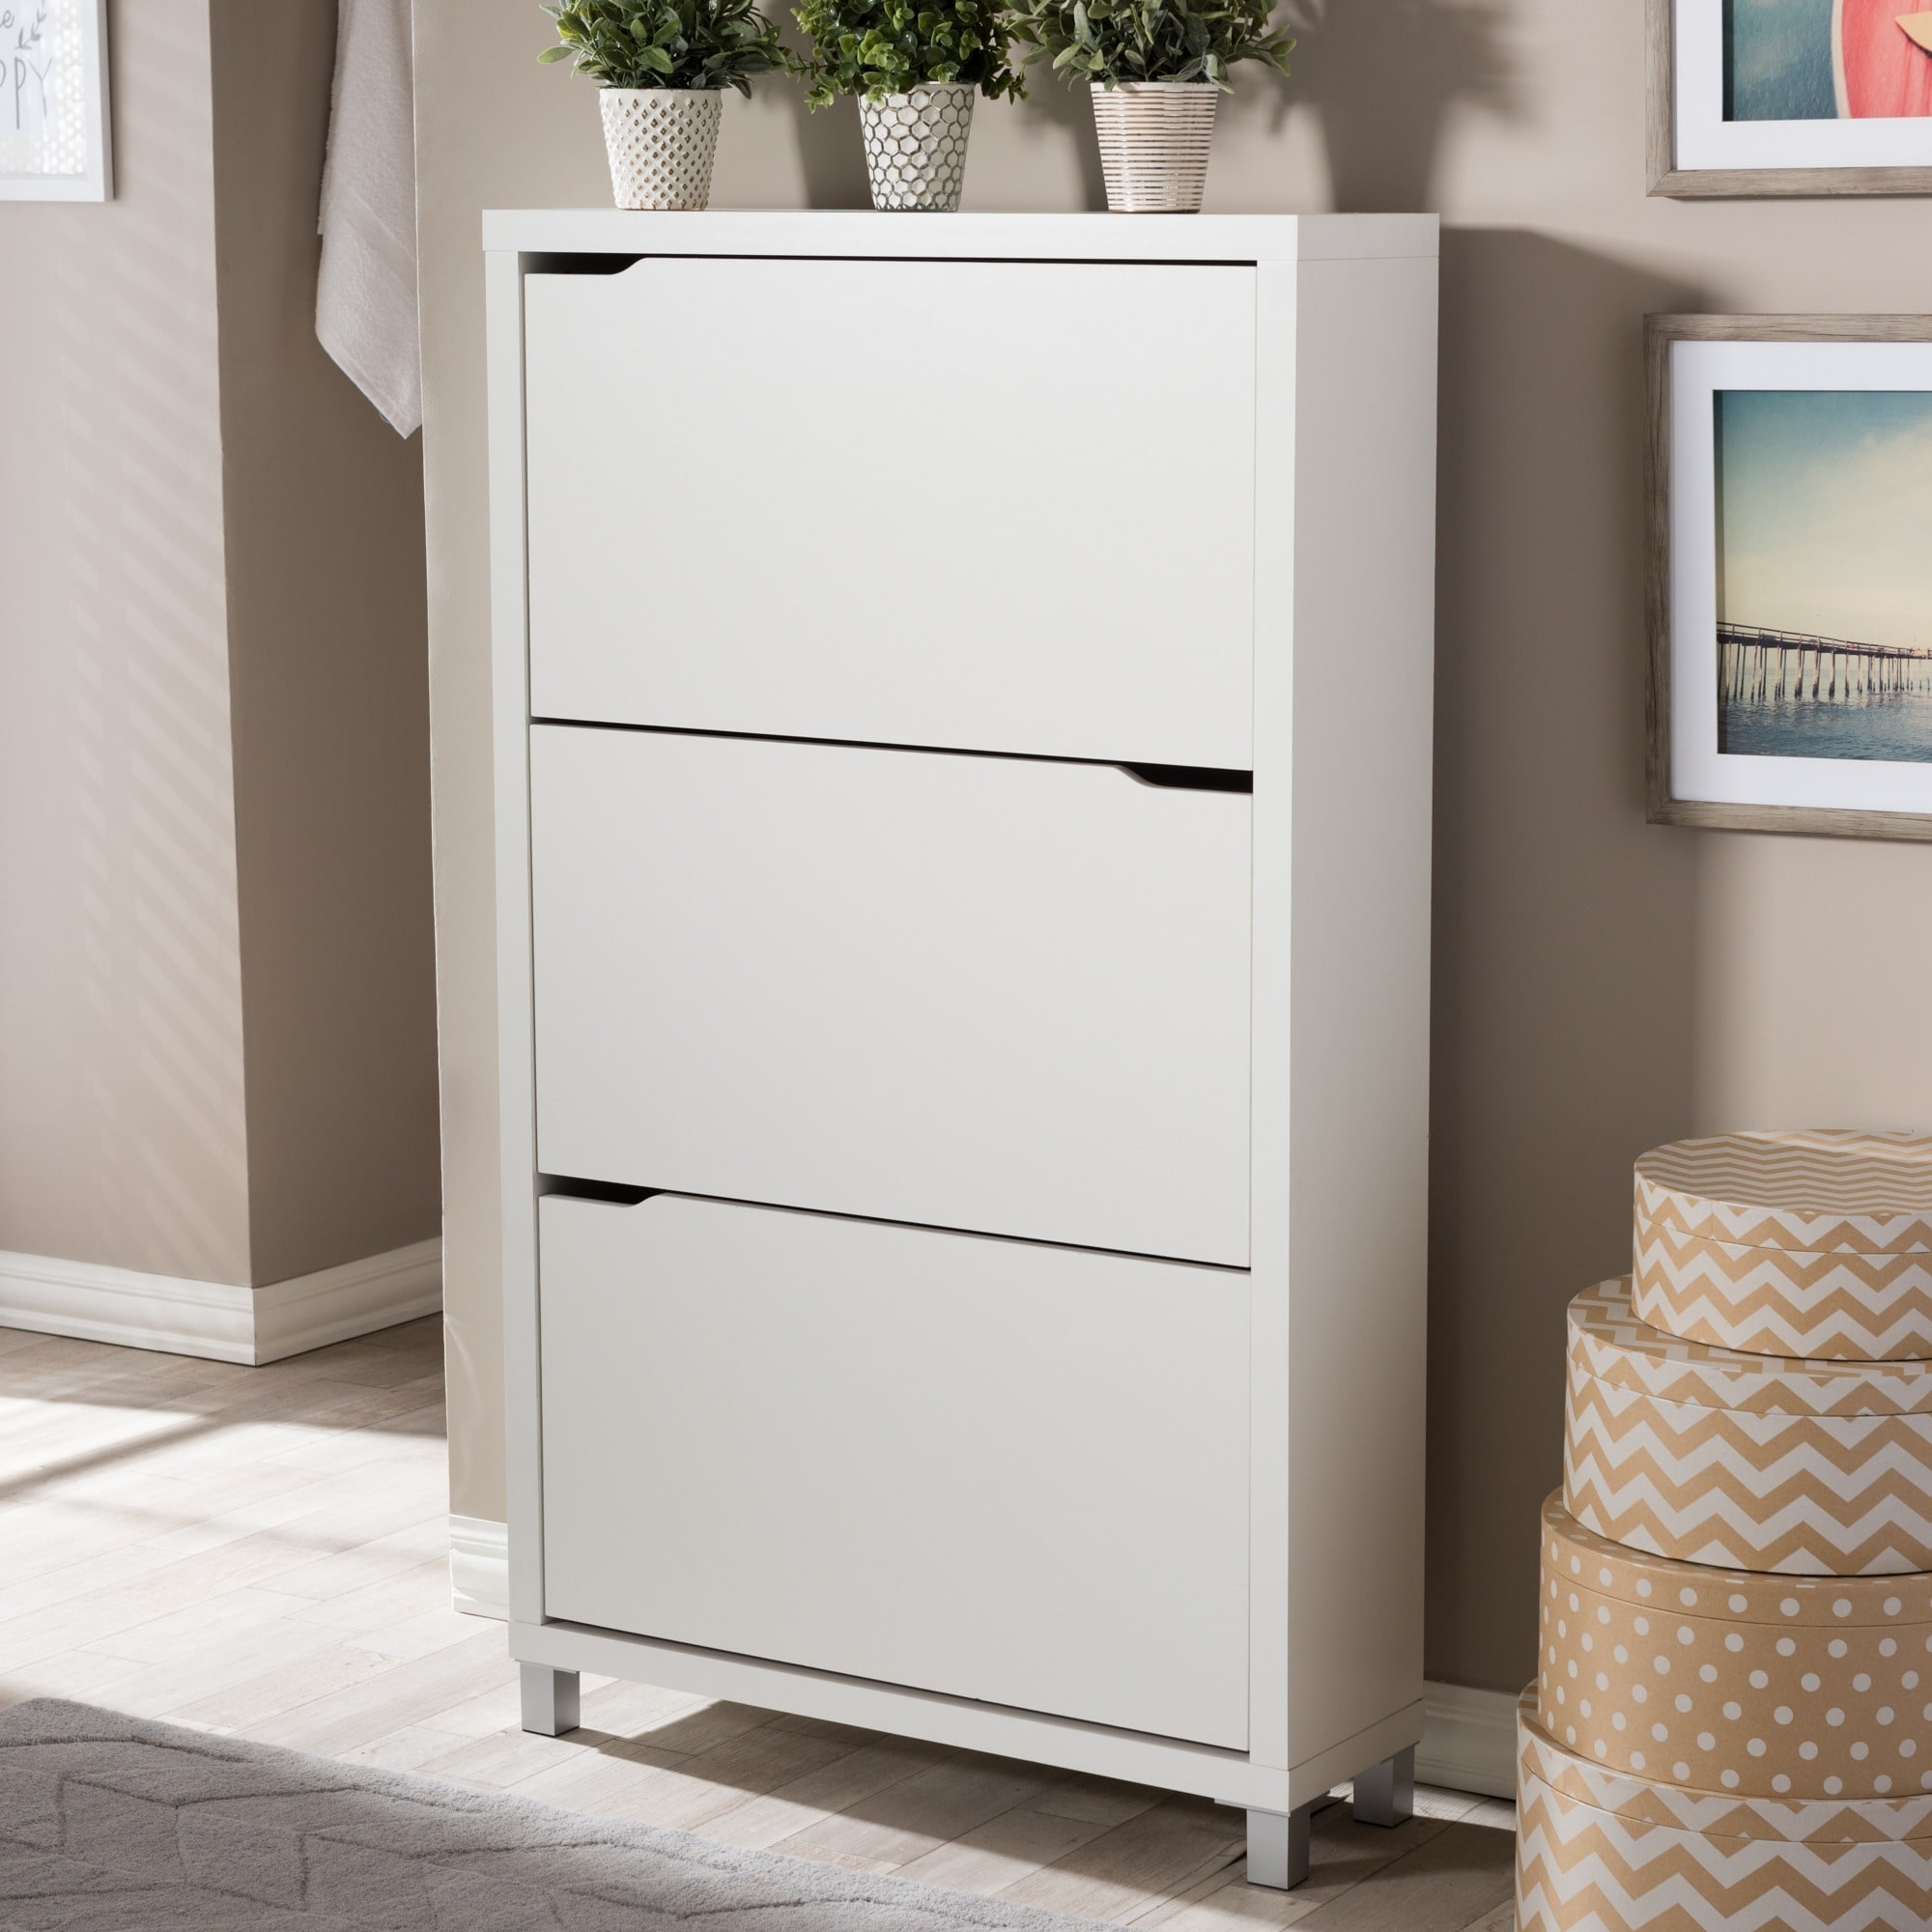 Beau Shop Baxton Studio Simms 3 Tier White Wood Modern Shoe Cabinet   Free  Shipping Today   Overstock.com   8777207